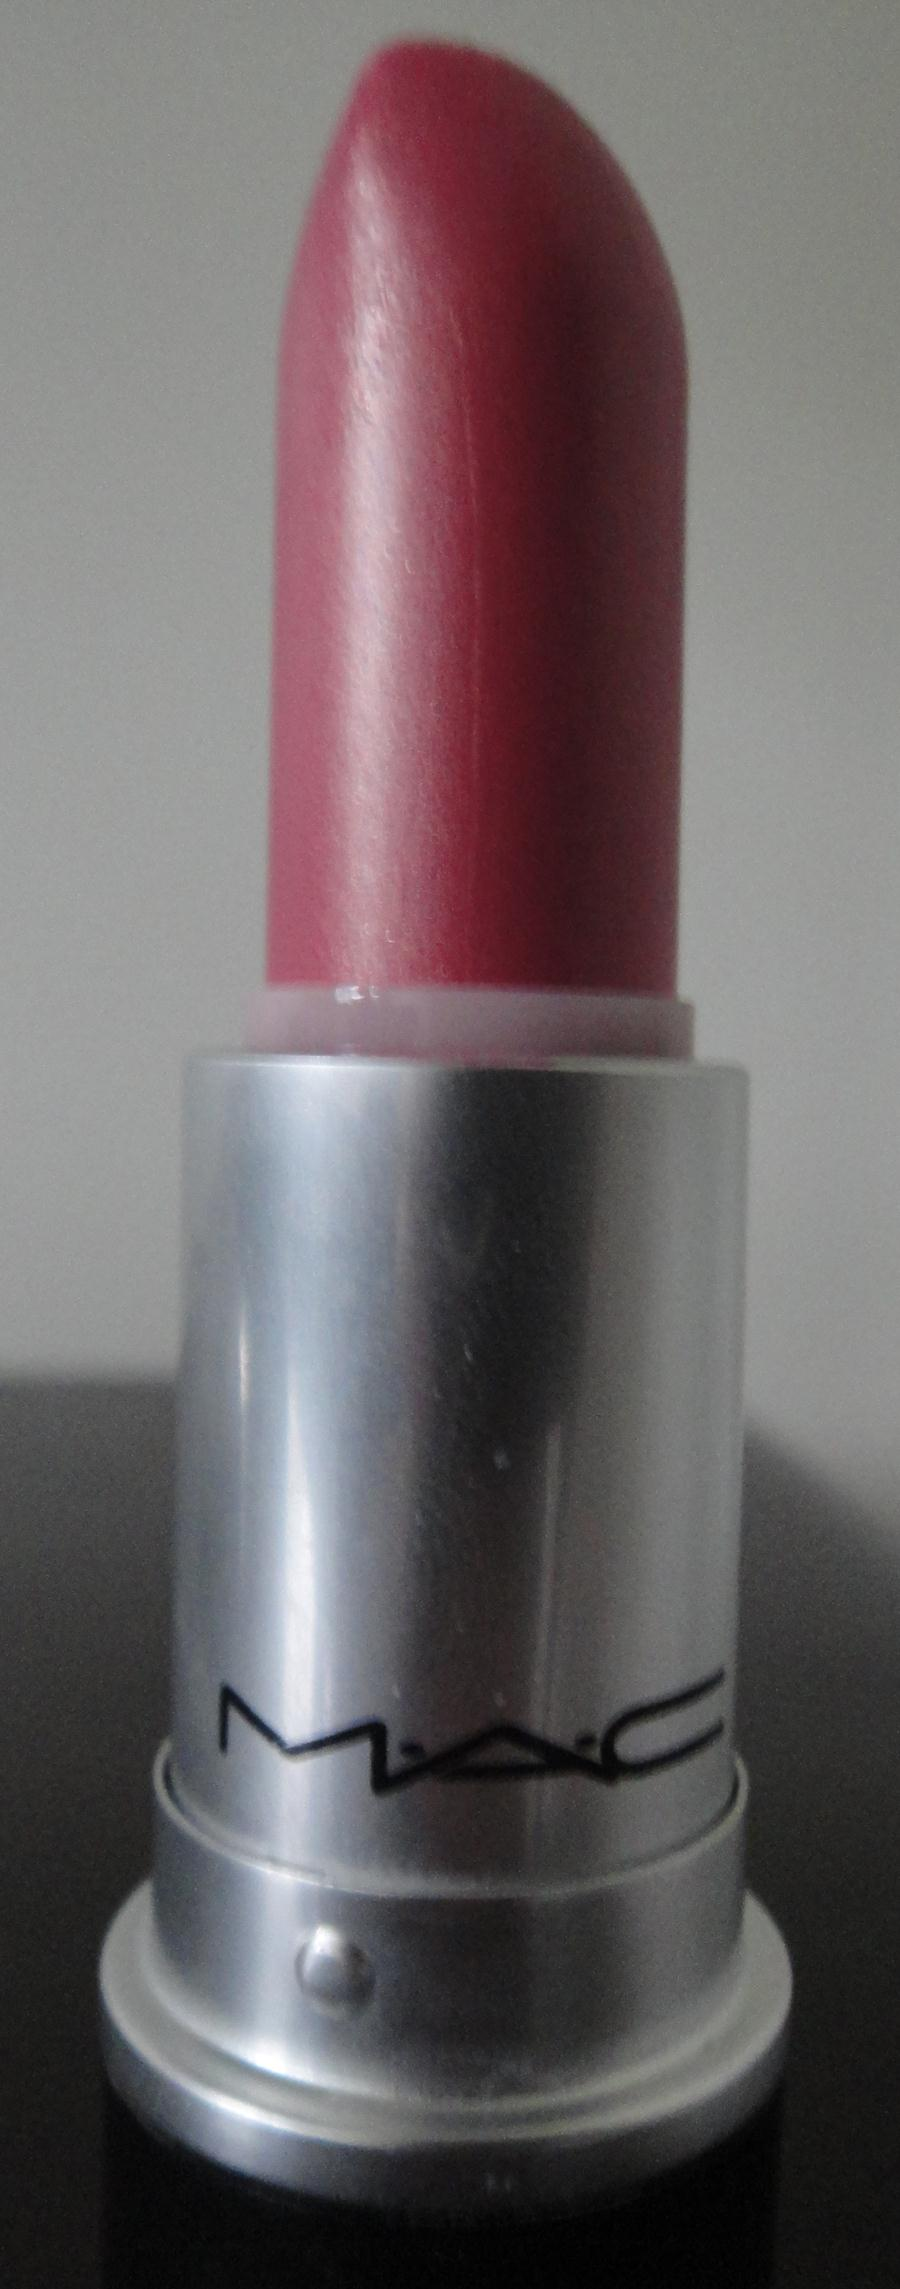 Beam Splash Of Sheer Shimmer Lipstick 1